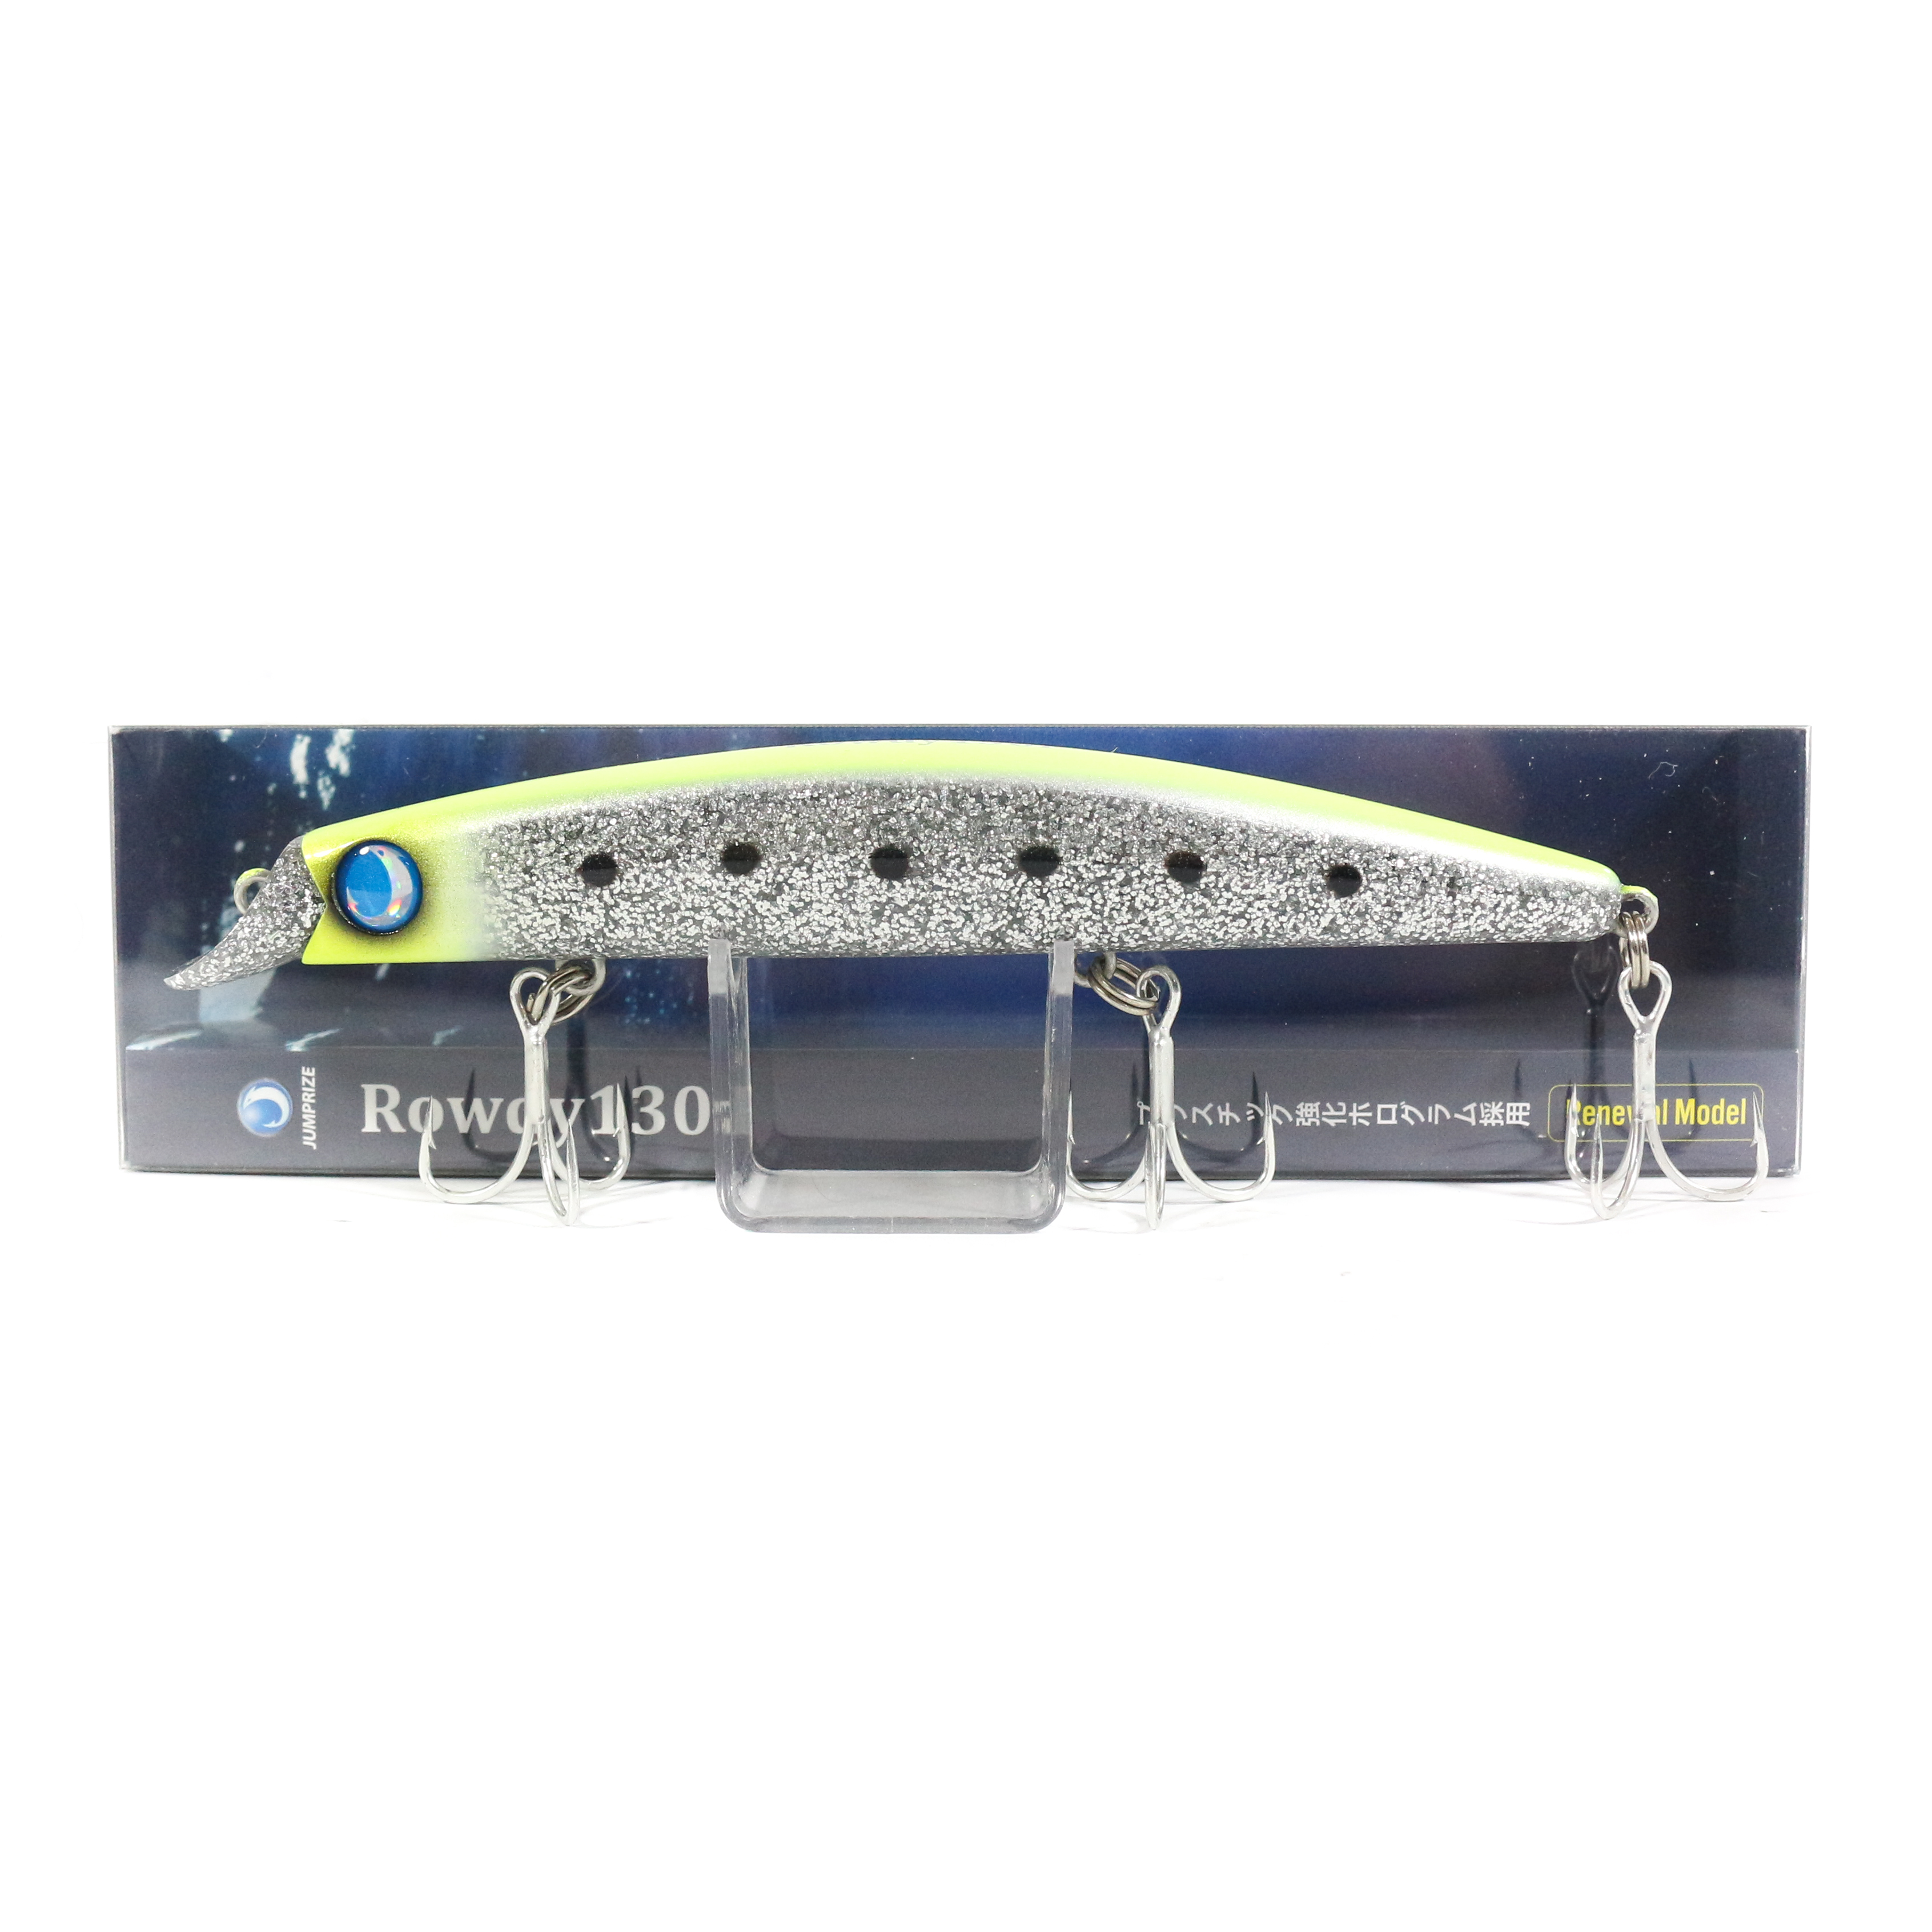 Sale Jumprize Rowdy 130F Floating Lure 109 (1645)